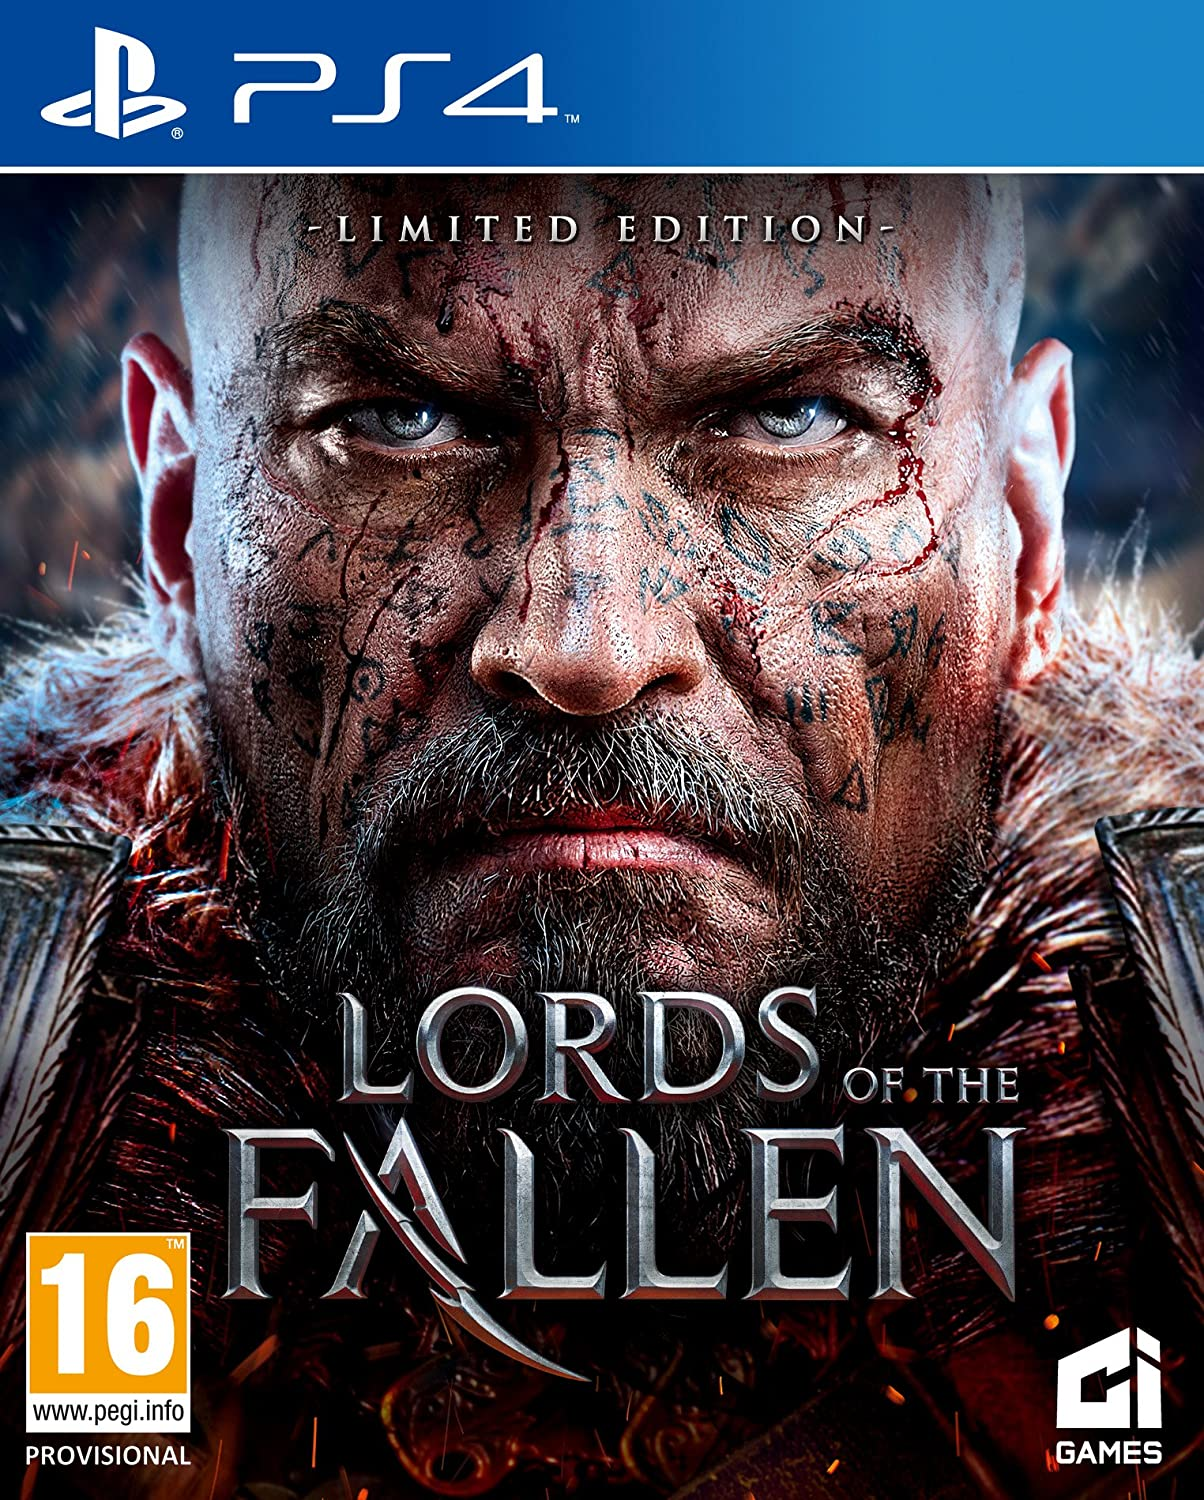 Lords of the fallen complete edition dlc add-on for playstation 4.